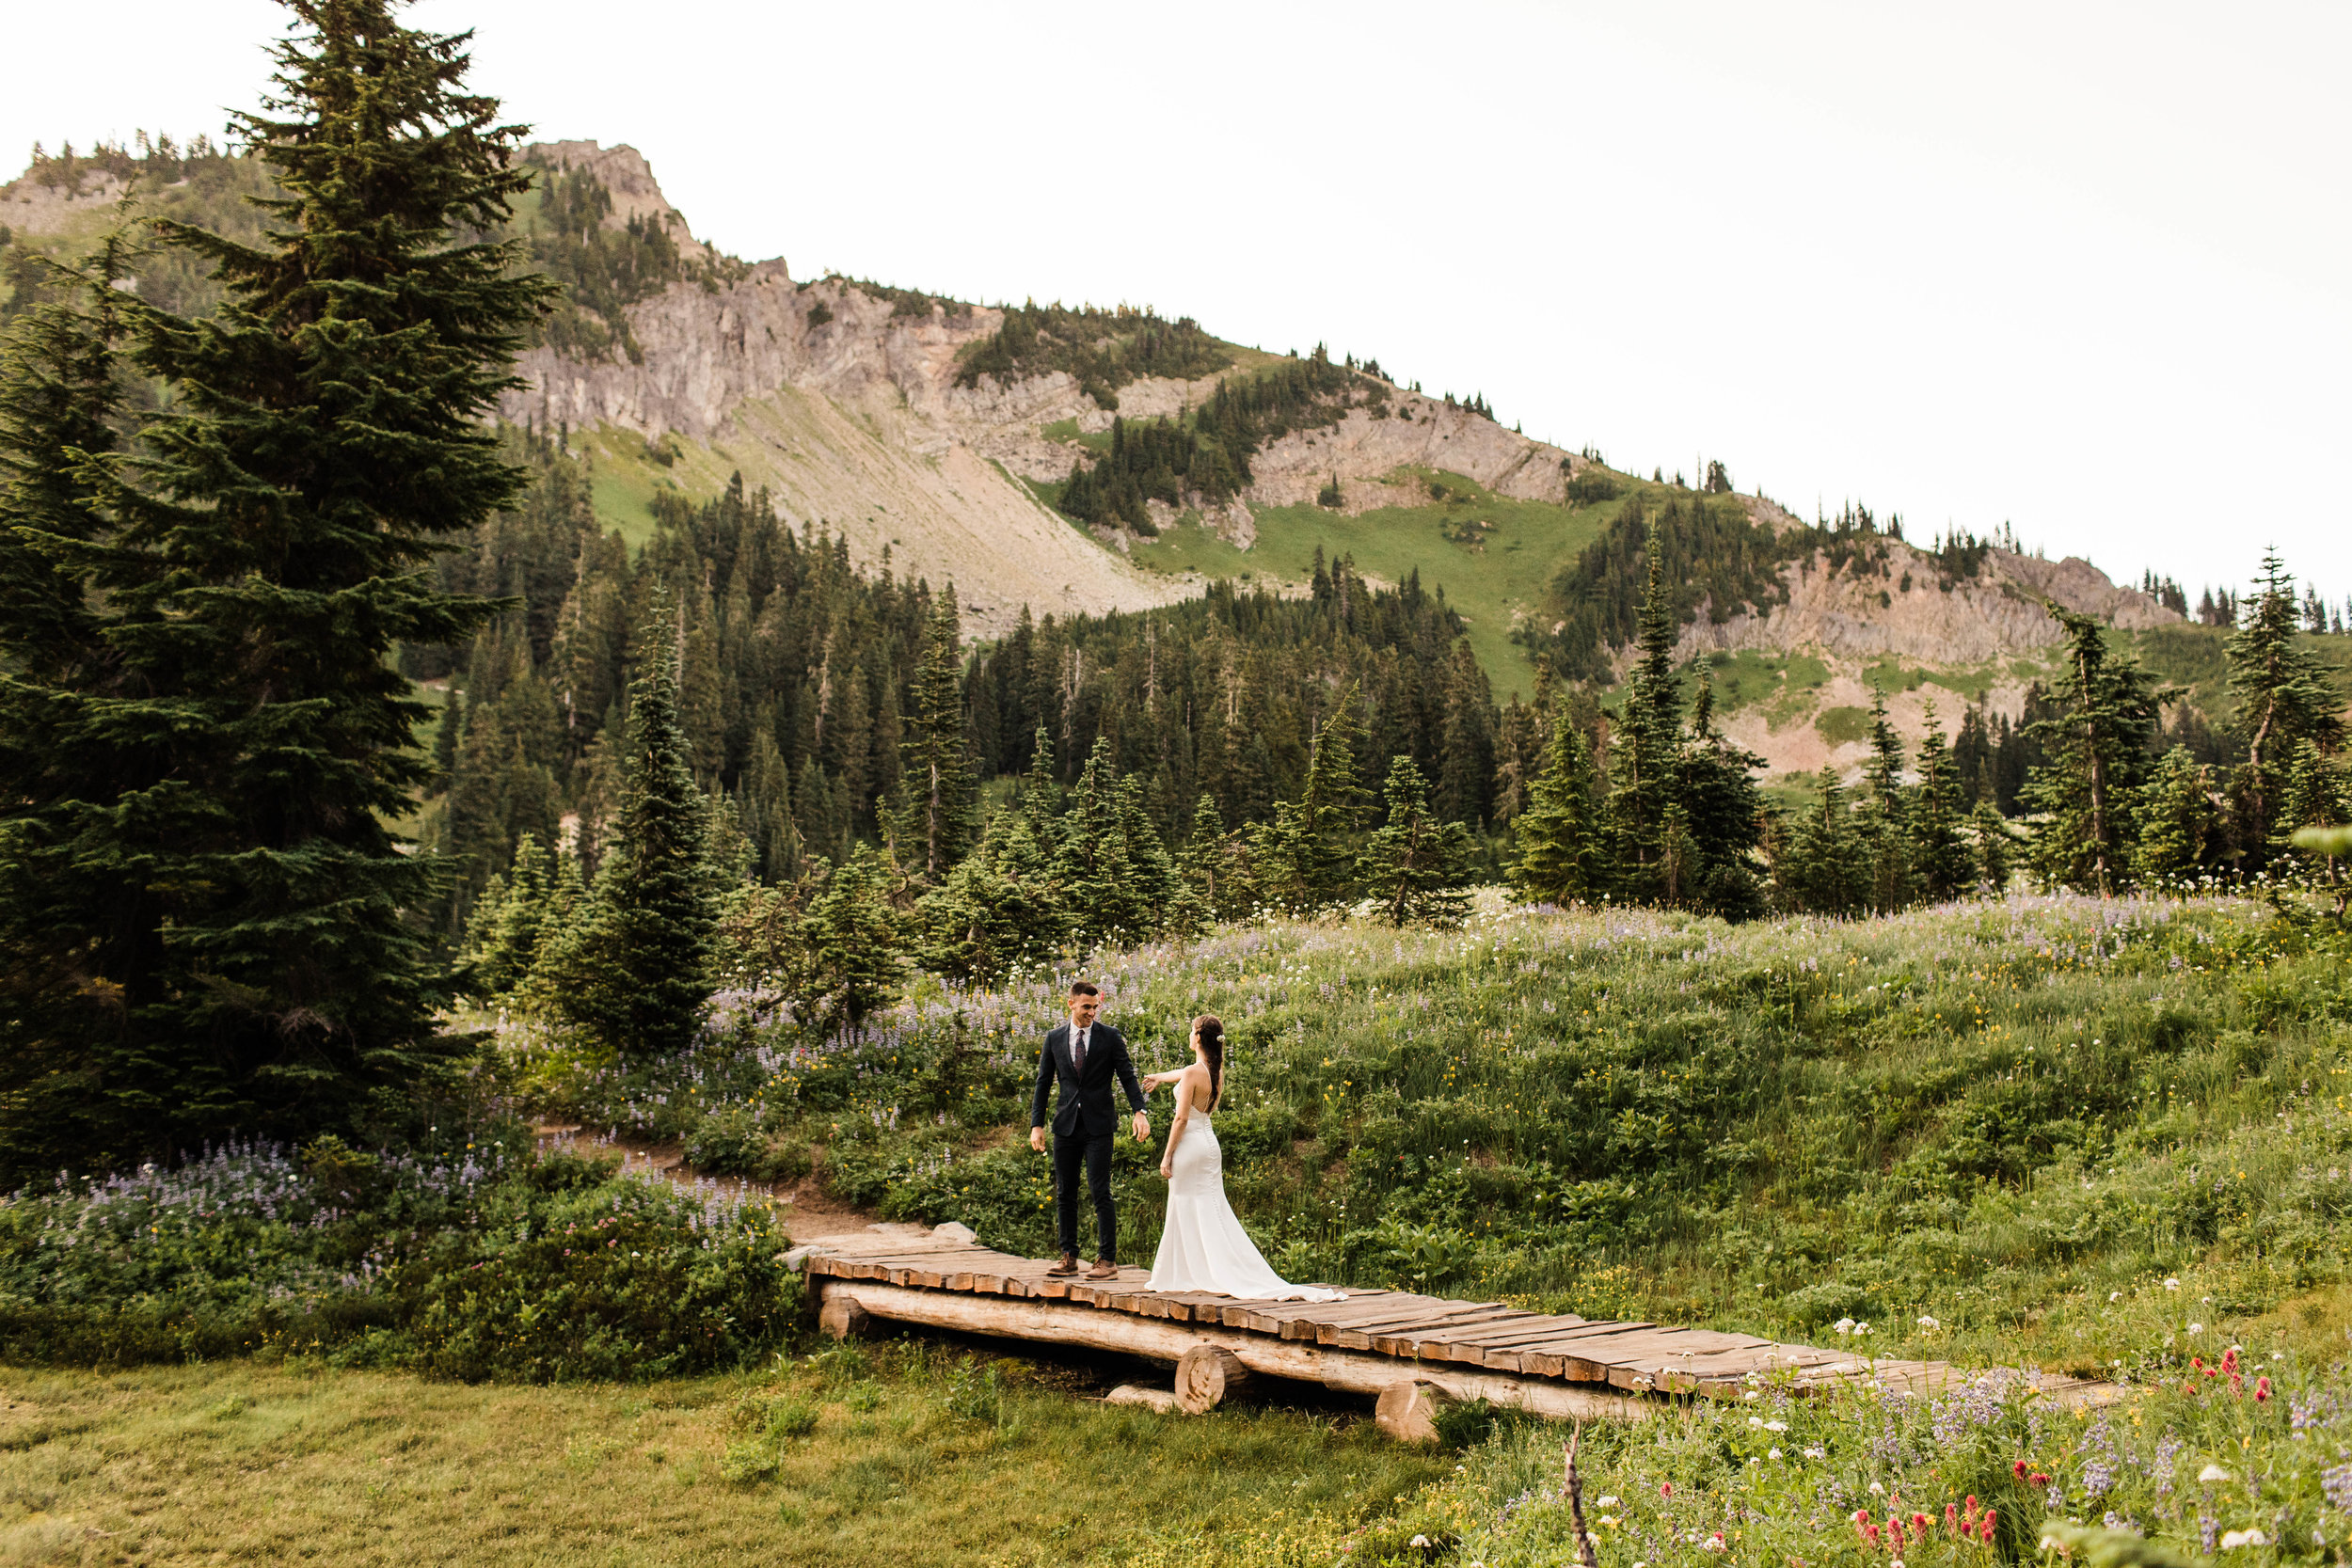 bride and groom's elopement first look in Mount Rainier National Park | Washington elopement photographers